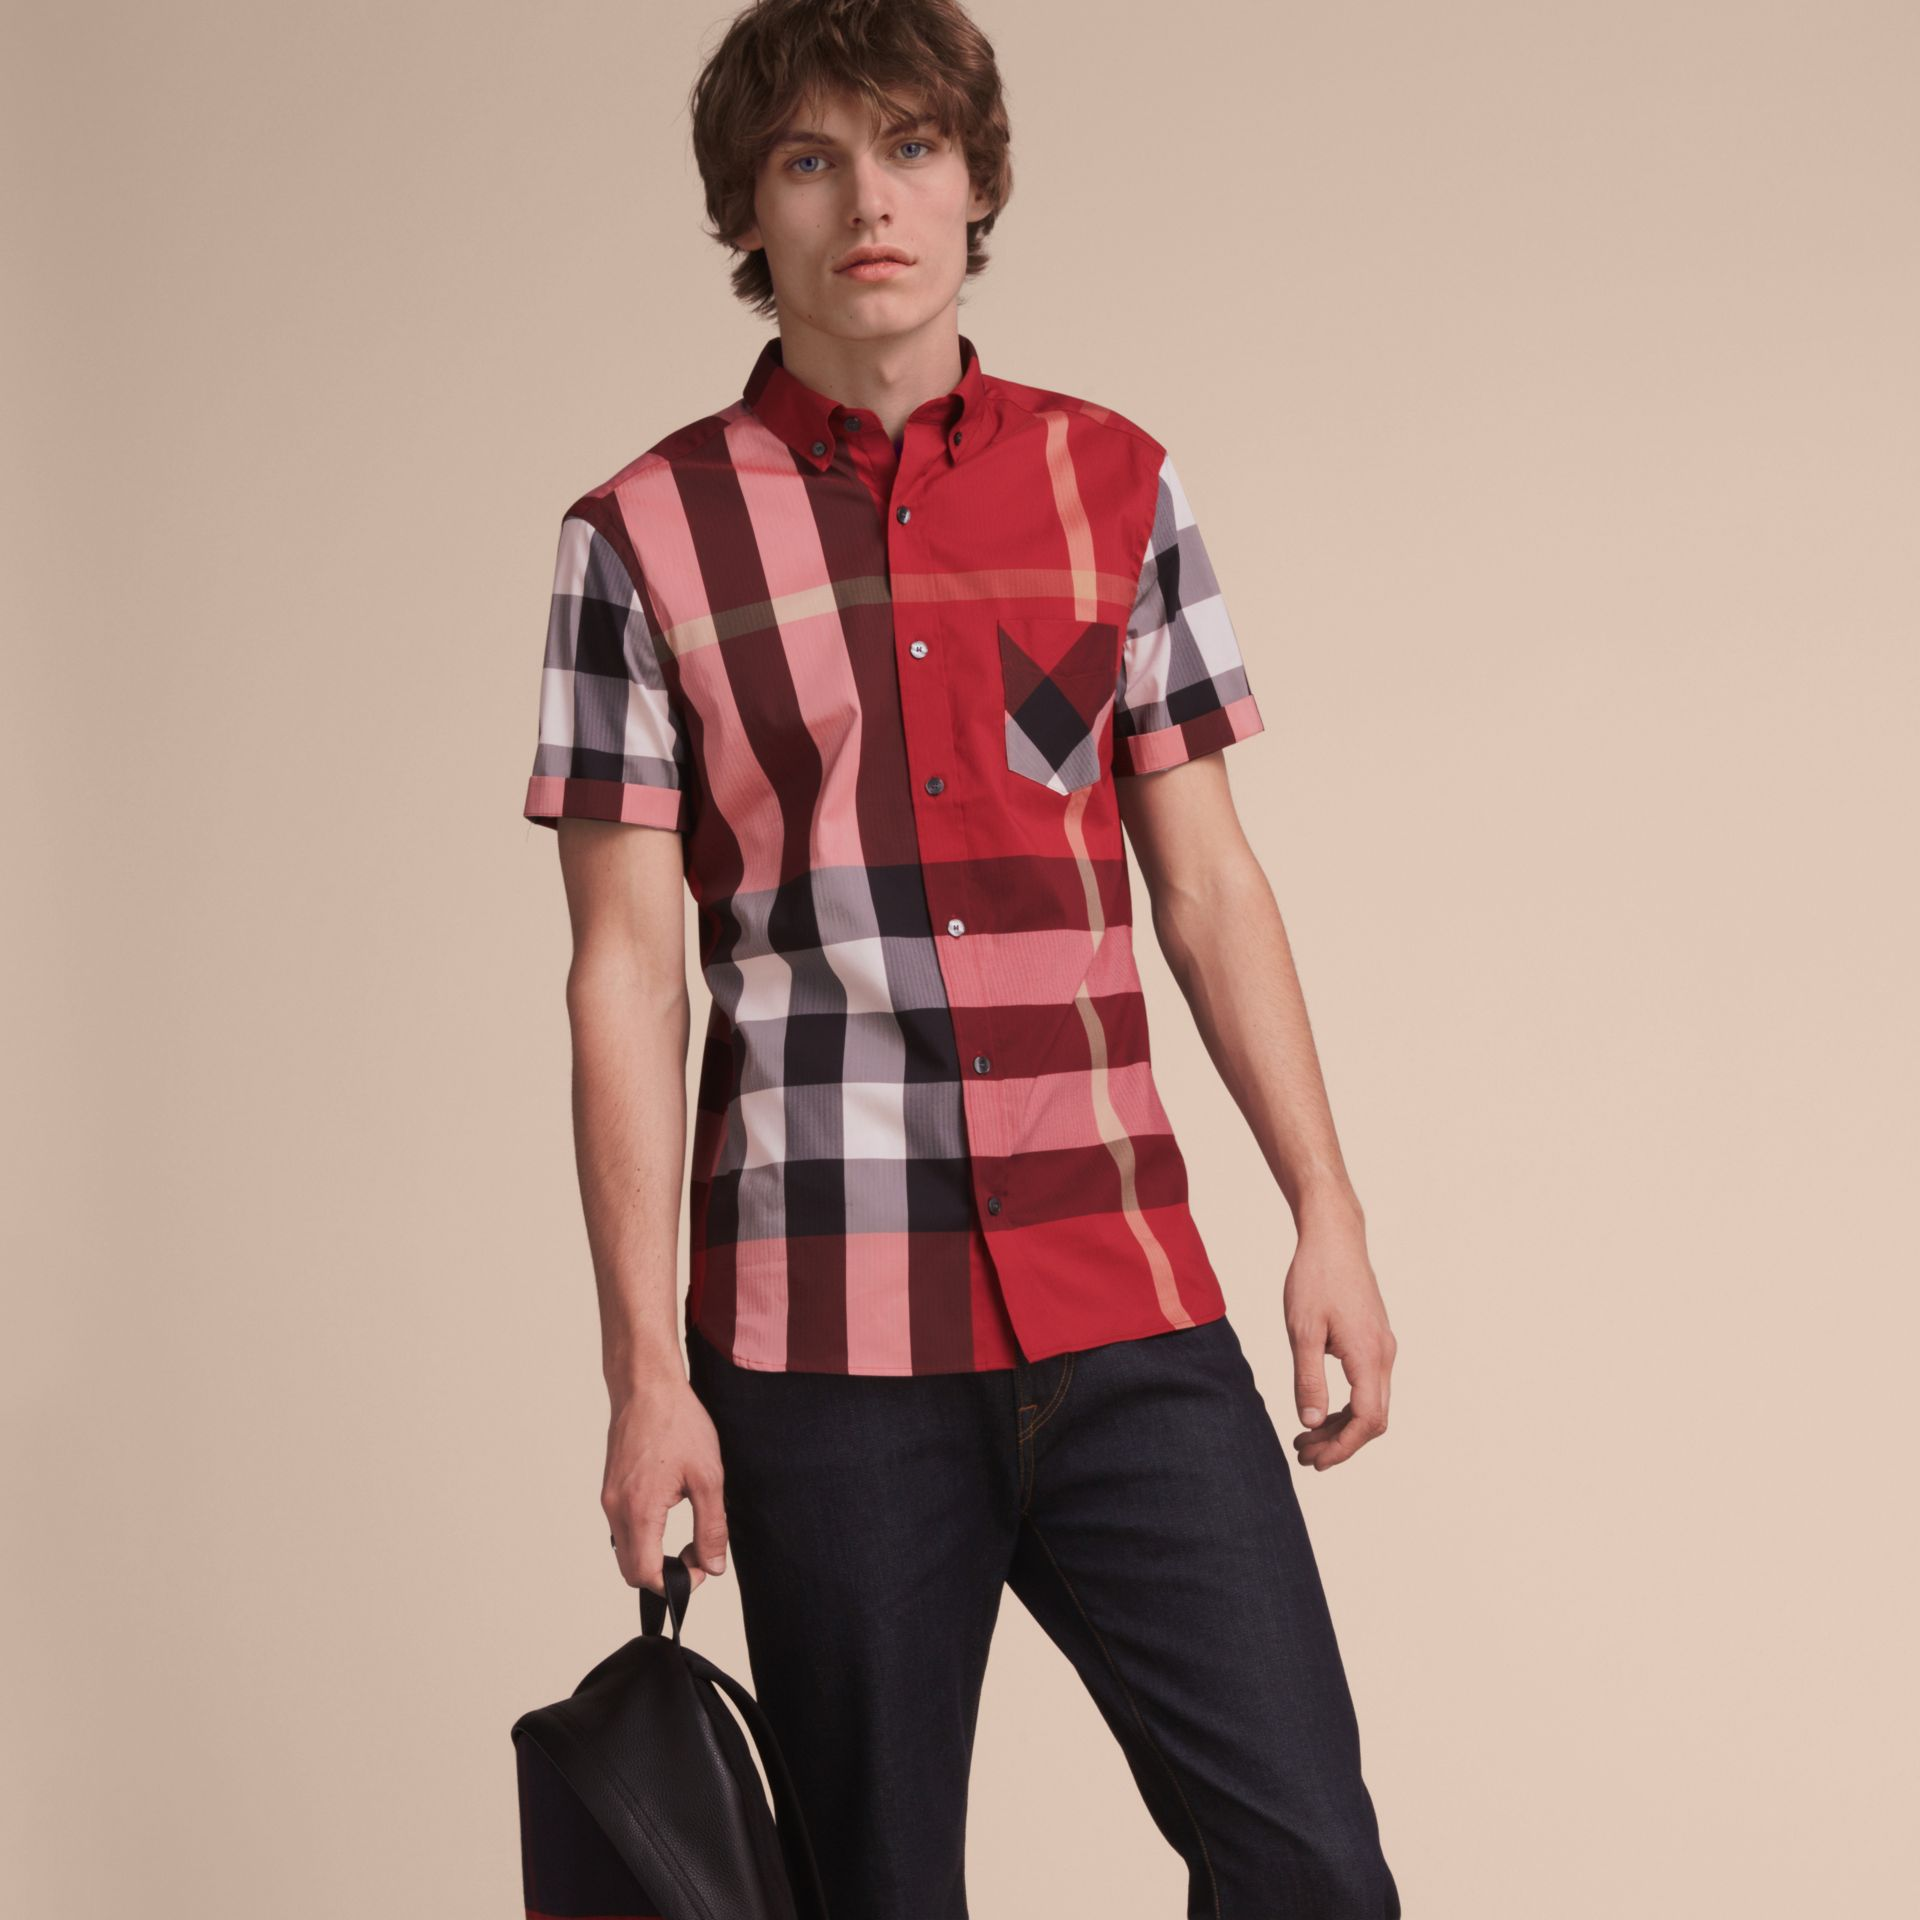 Short-sleeve Check Stretch Cotton Blend Shirt in Parade Red - Men | Burberry - gallery image 6